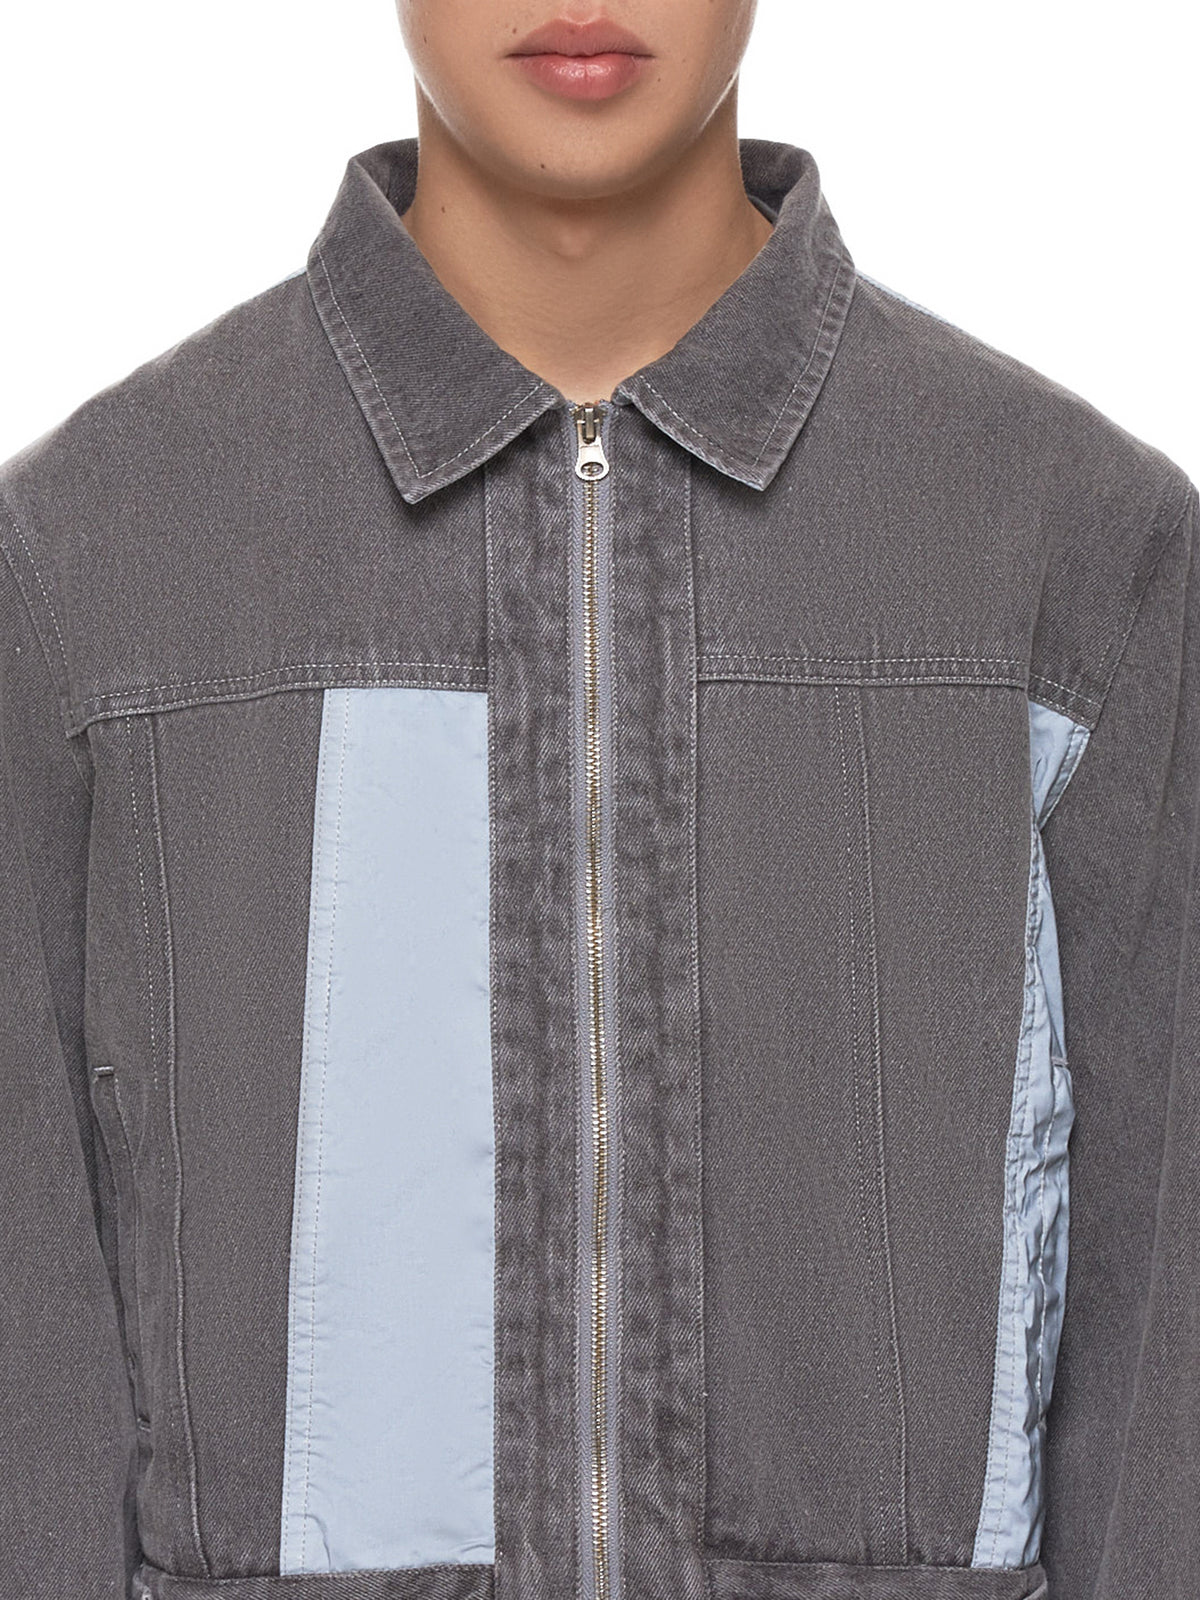 Reflective Jacket (REFLECTIVE-PANEL-GREY)